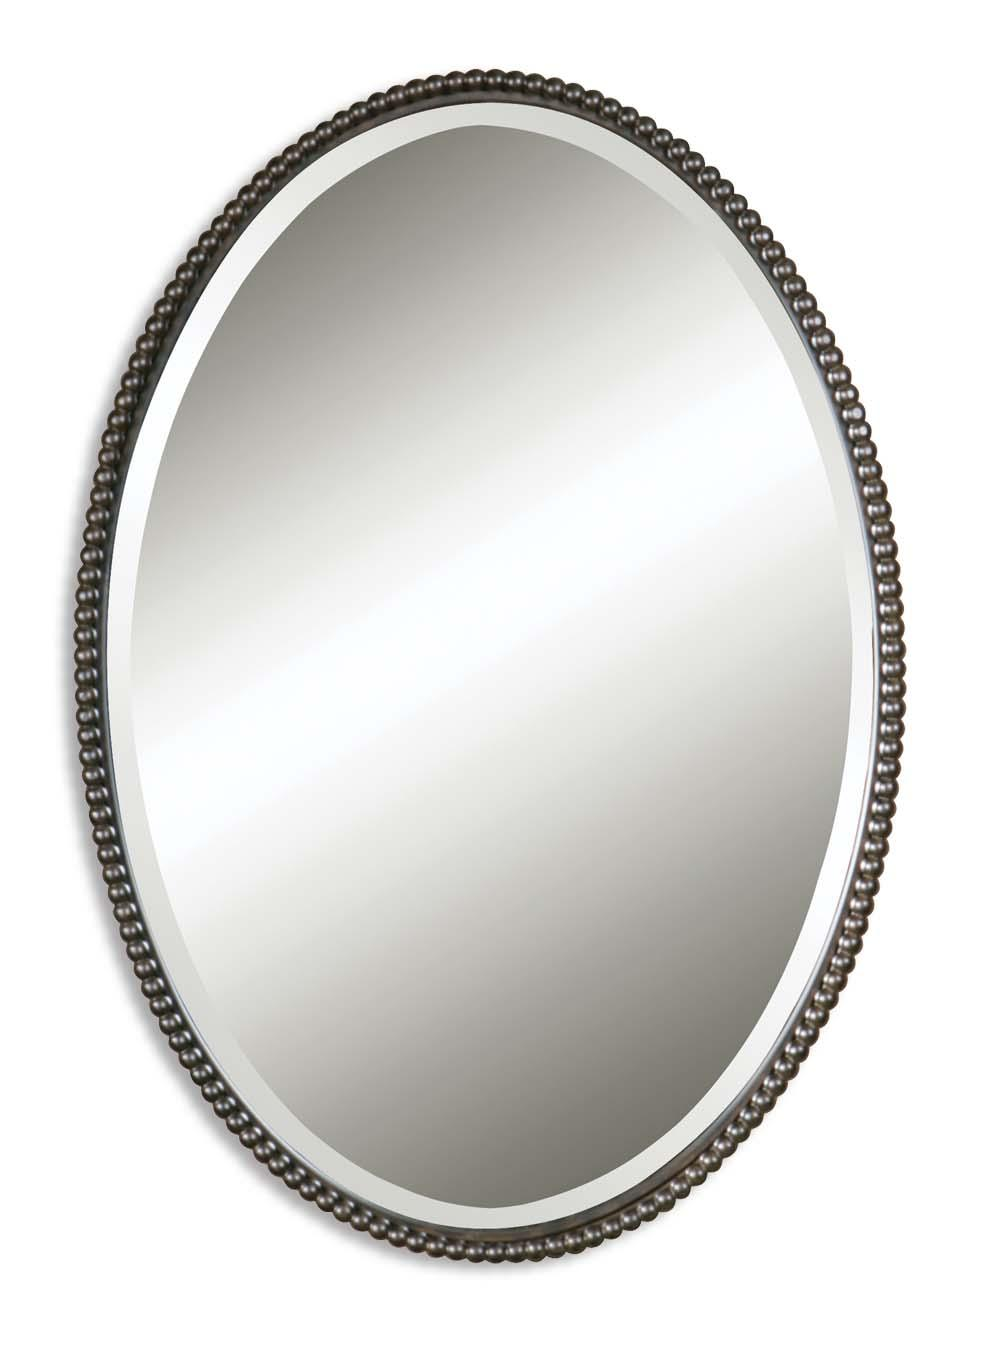 Uttermost Mirrors Sherise Bronze Oval Mirror - Item Number: 01101 B